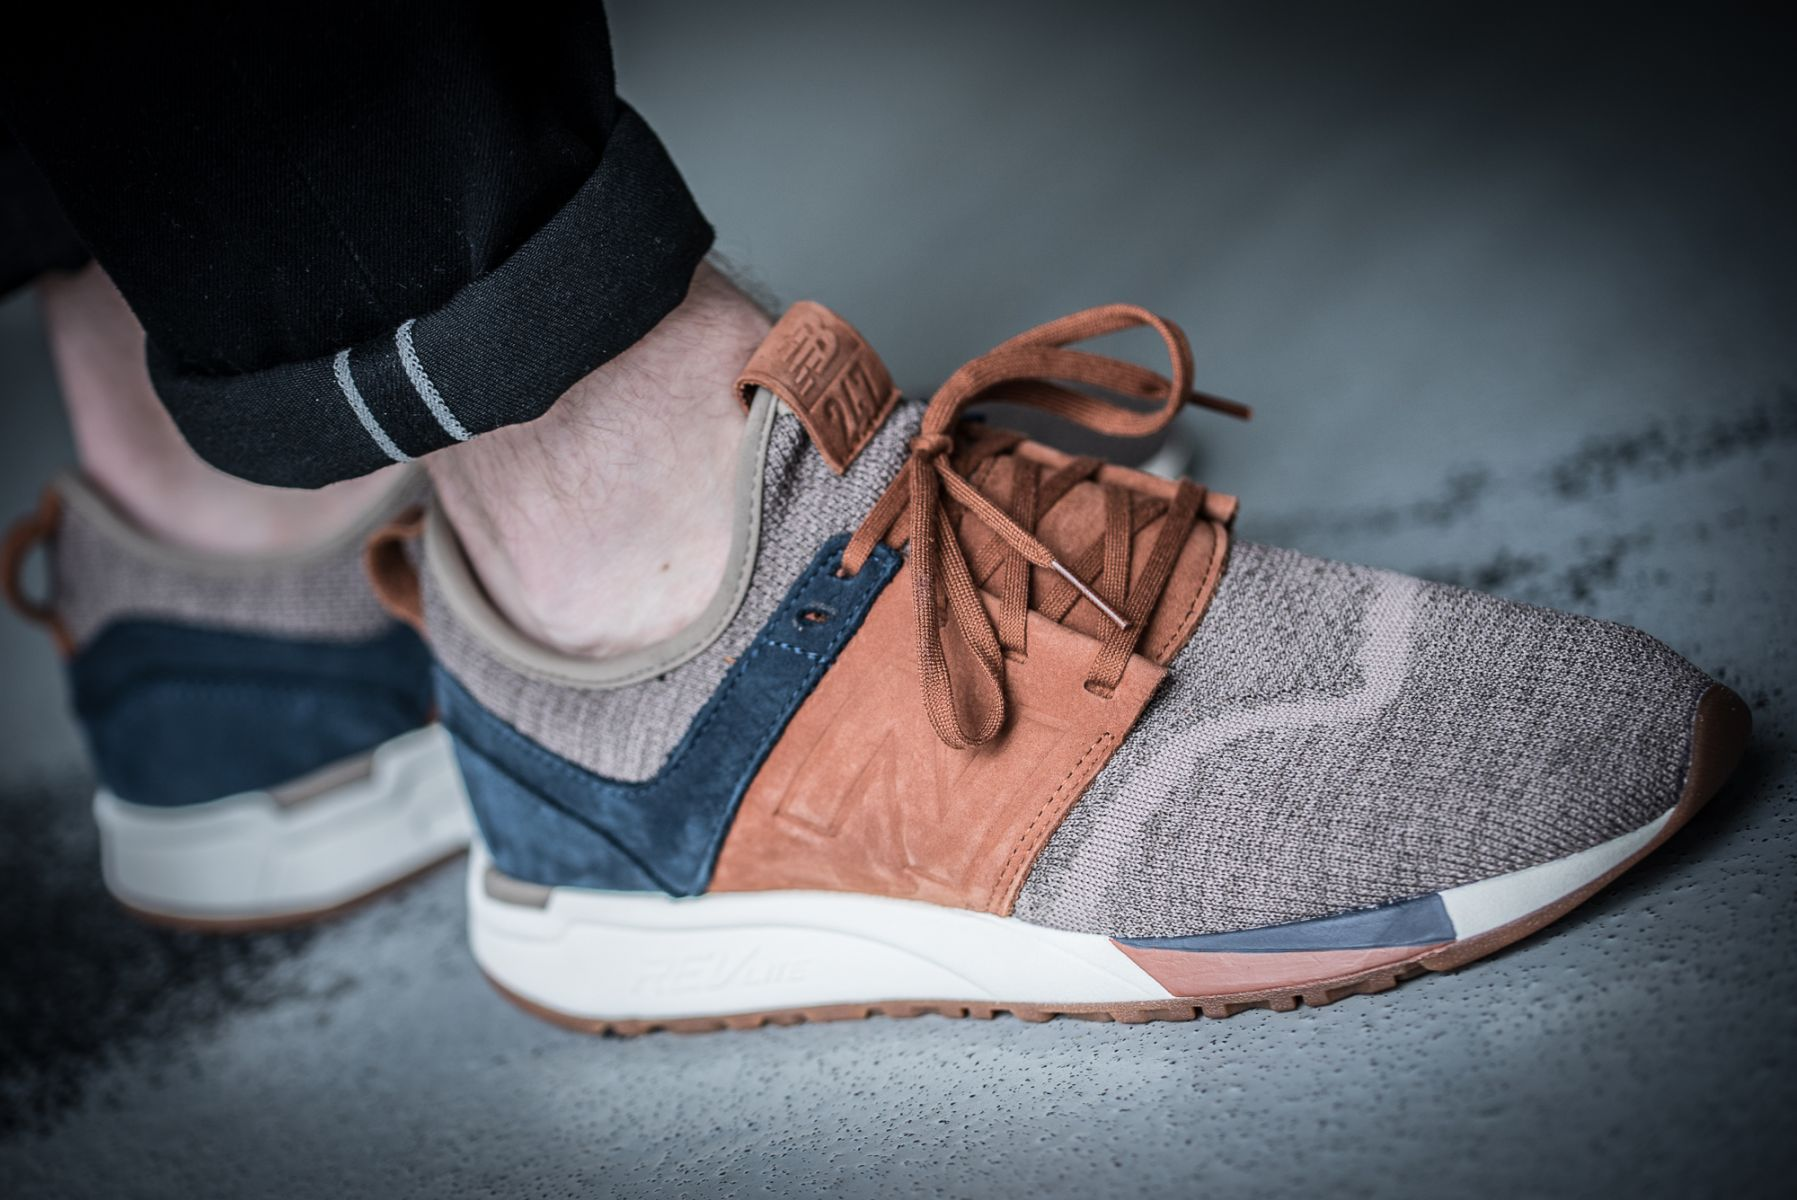 new-balance-mrl247lb-luxe-knit-pack-brown-blue-582461-60-9-mood-3